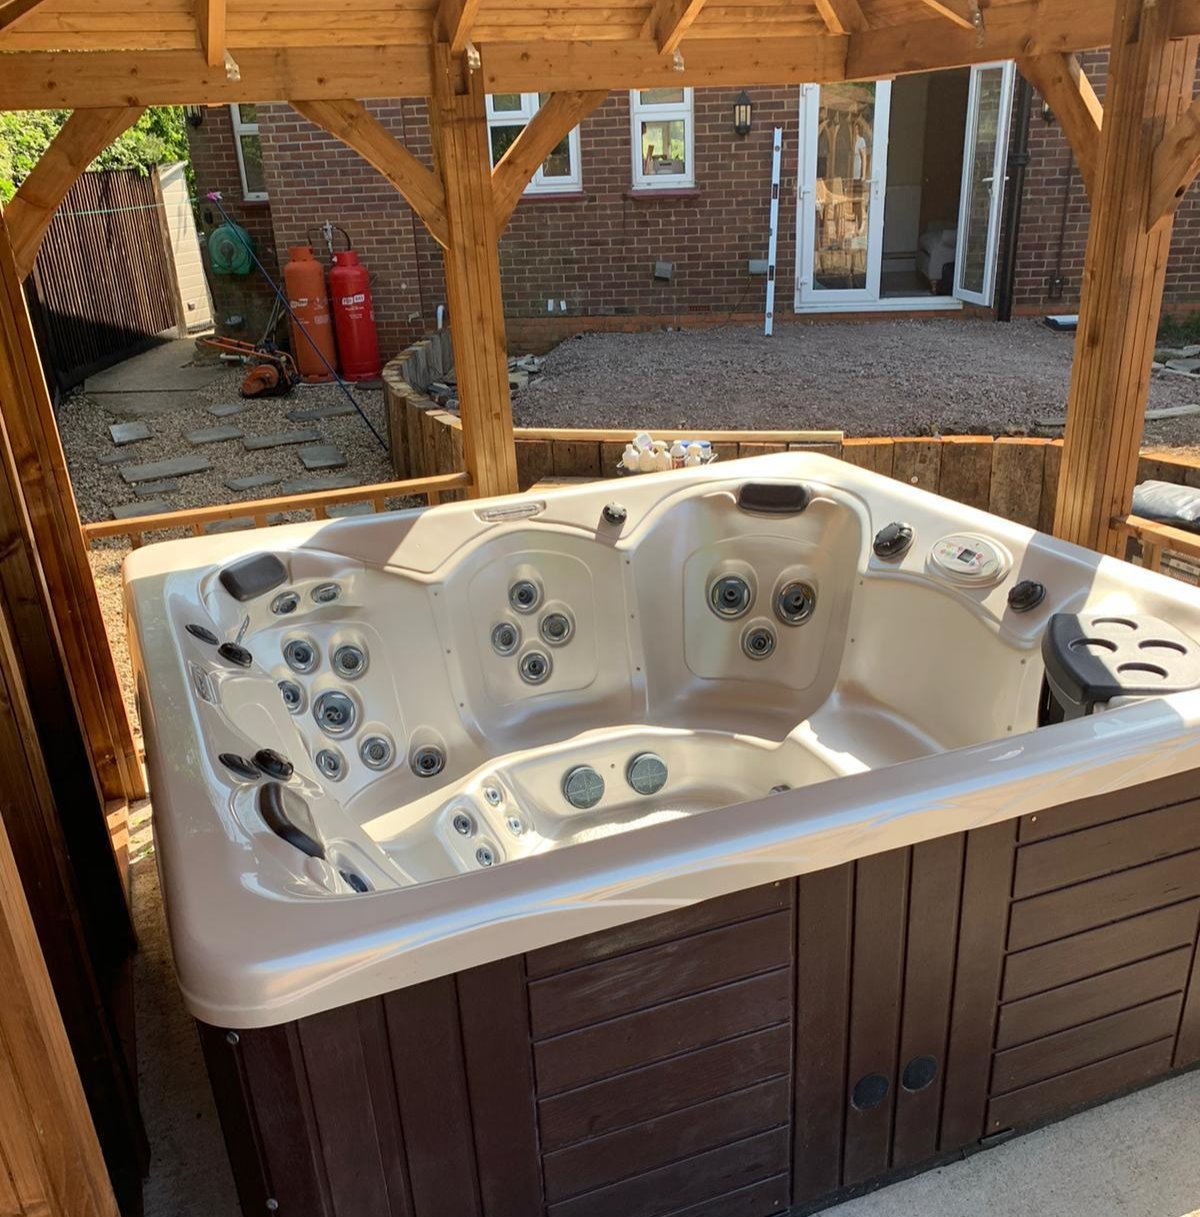 The Benefits Of Buying An Approved Used Hot Tub.